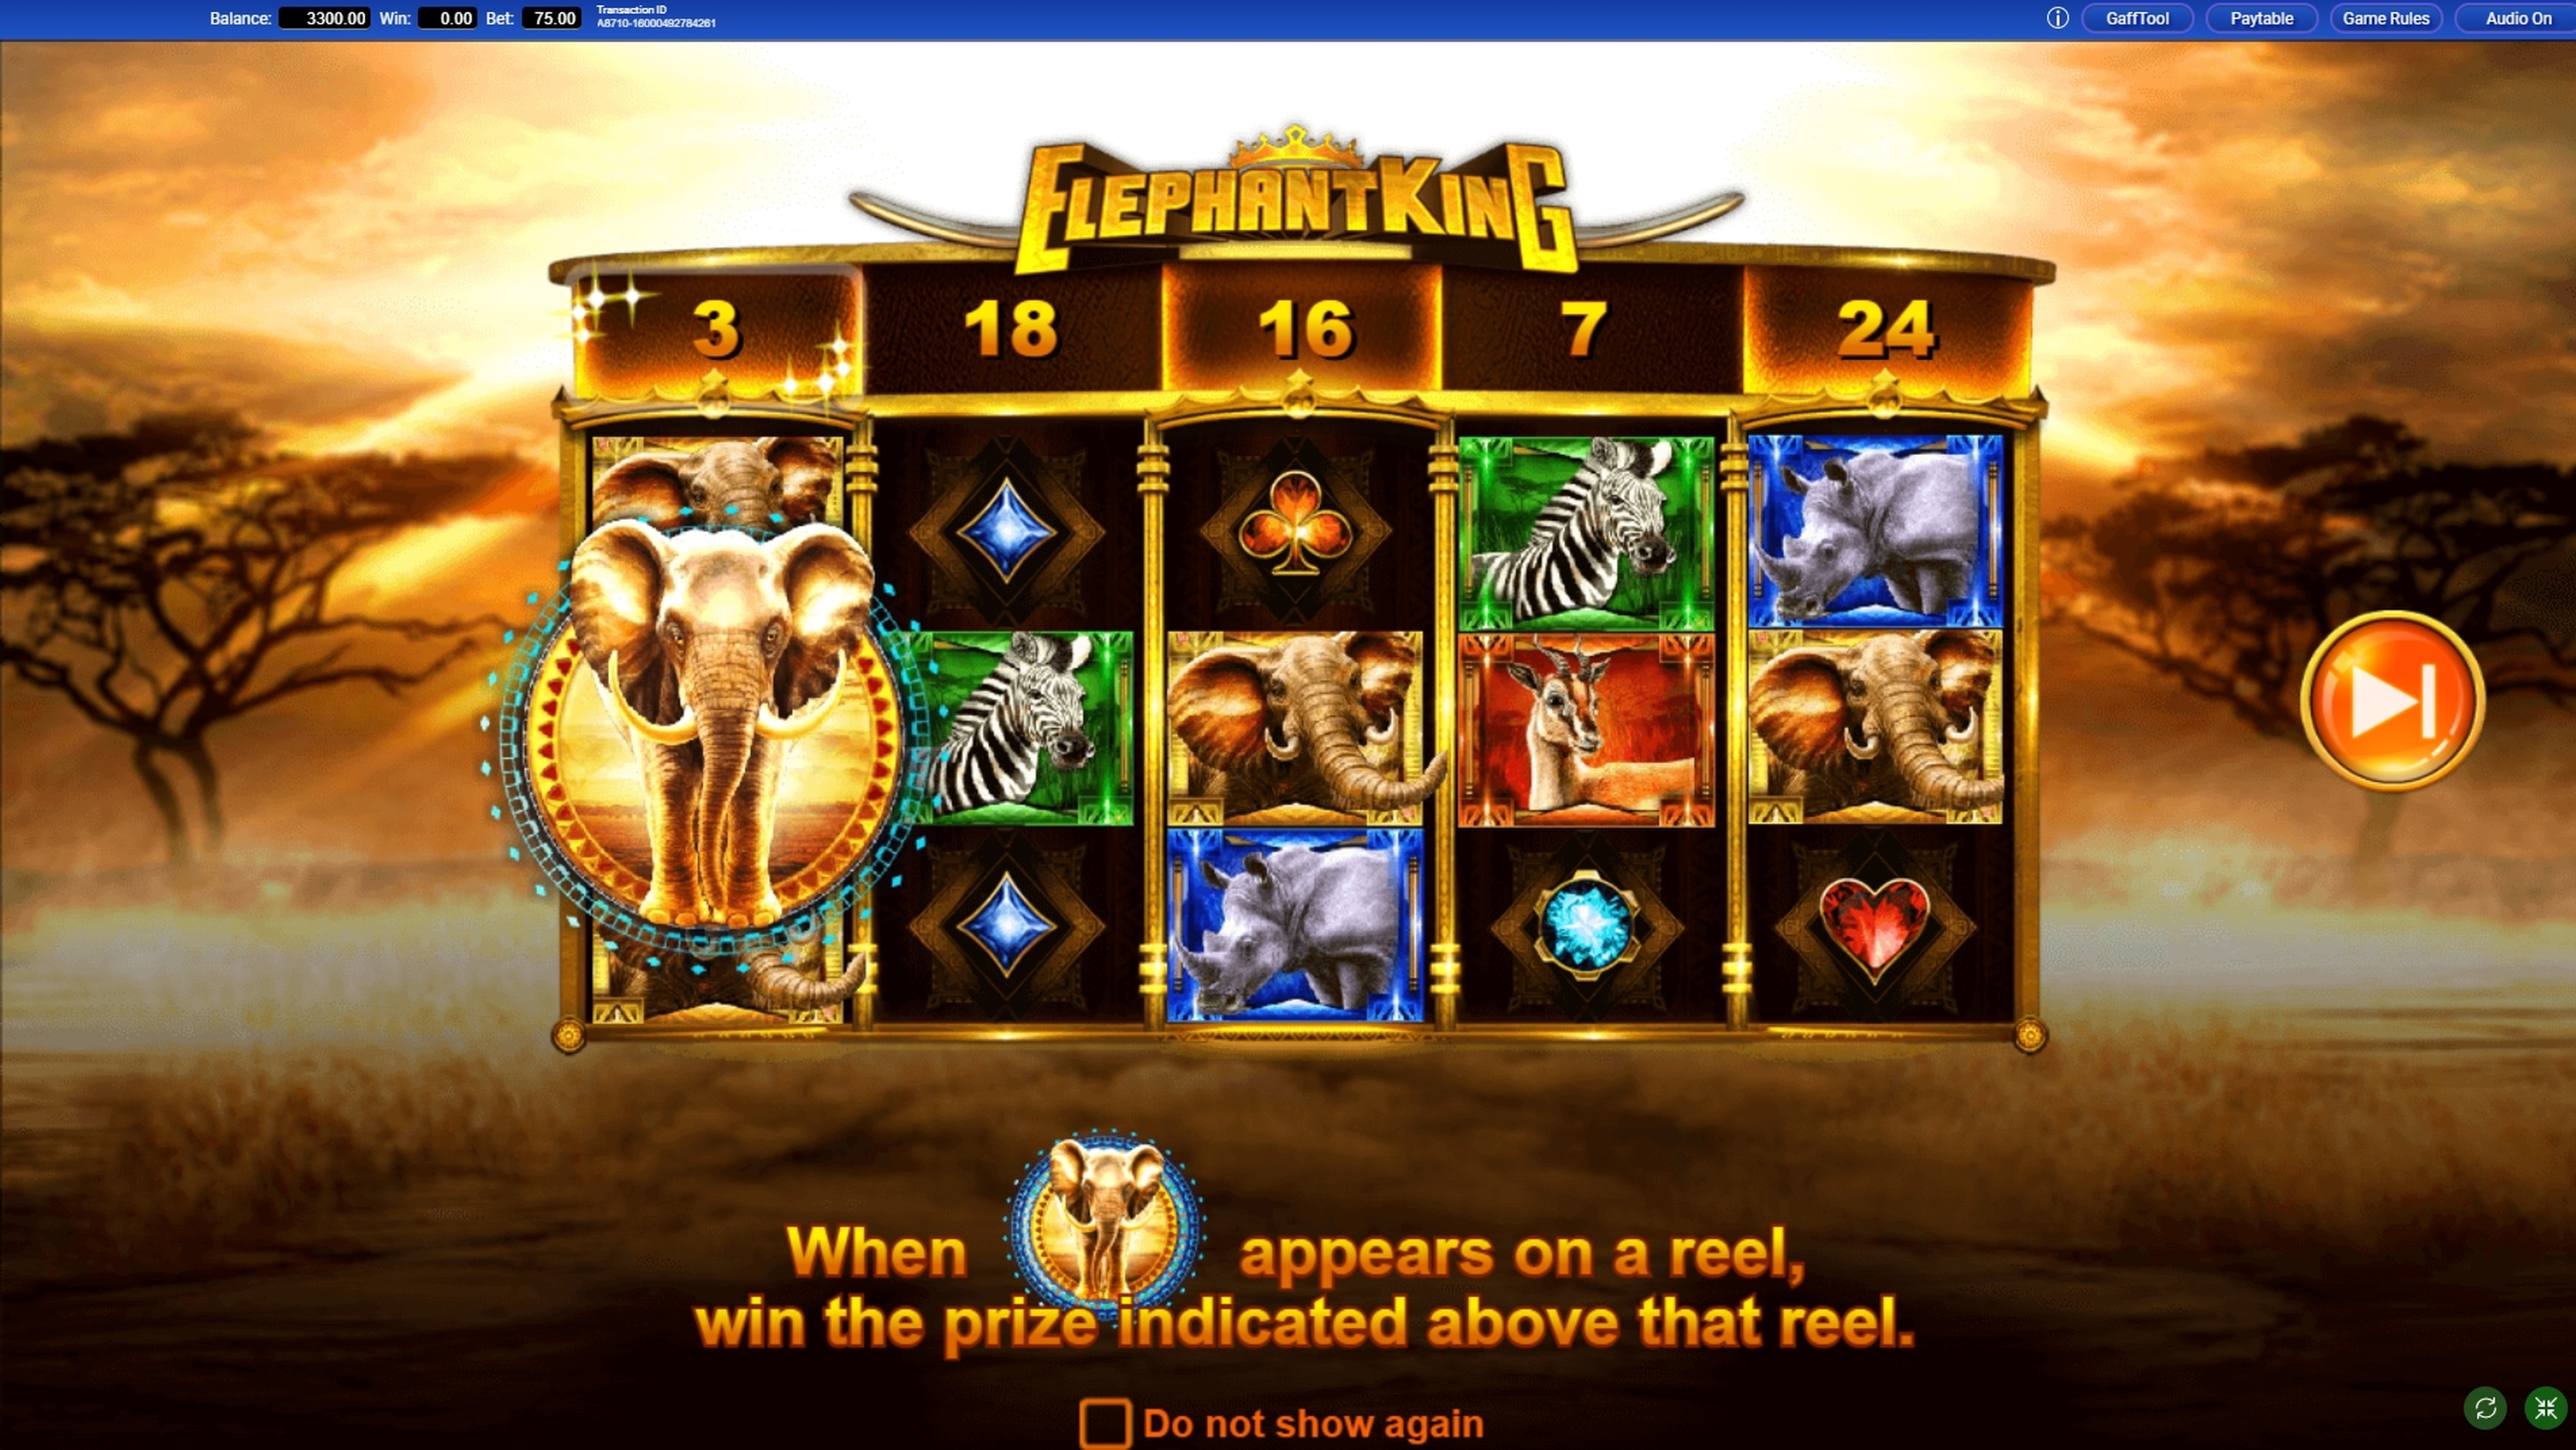 Play Elephant King Free Casino Slot Game by IGT